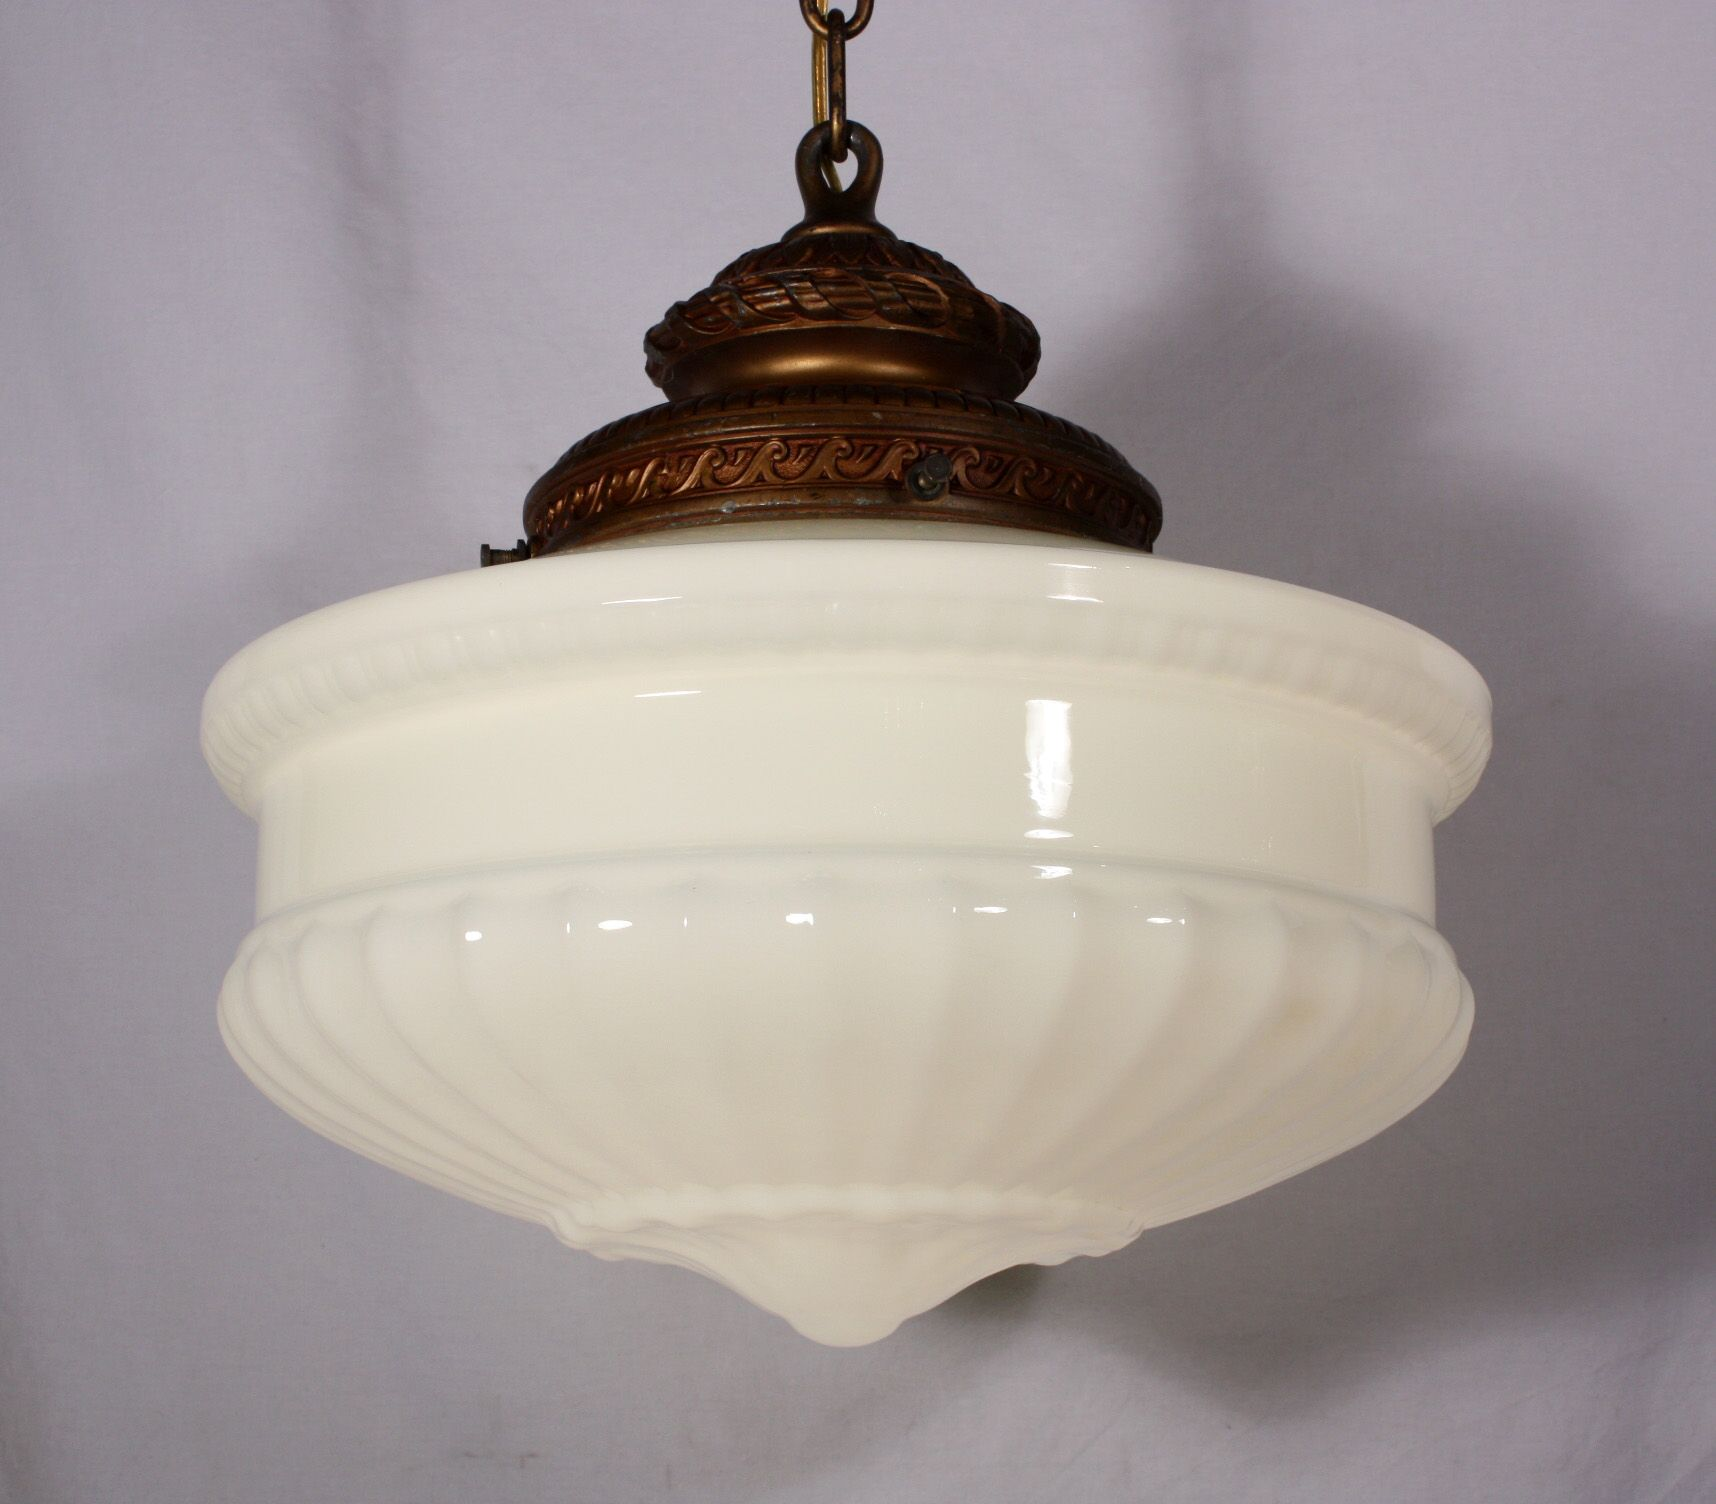 Large antique pendant light fixture with original milk glass shade c 1910 nc547 for sale antiques com classifieds